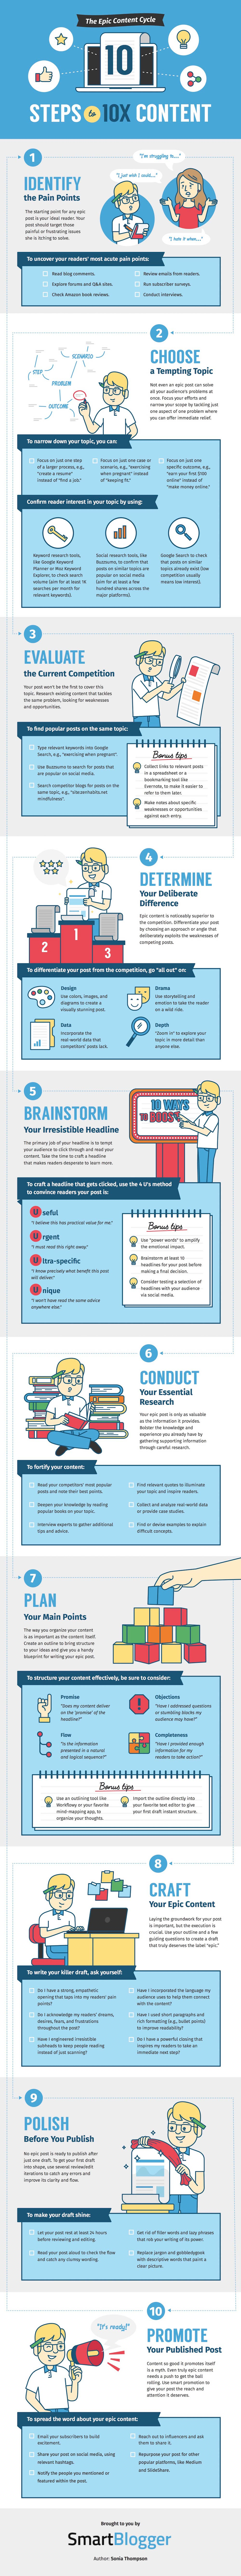 epic-content-cycle-infographic-v3-web